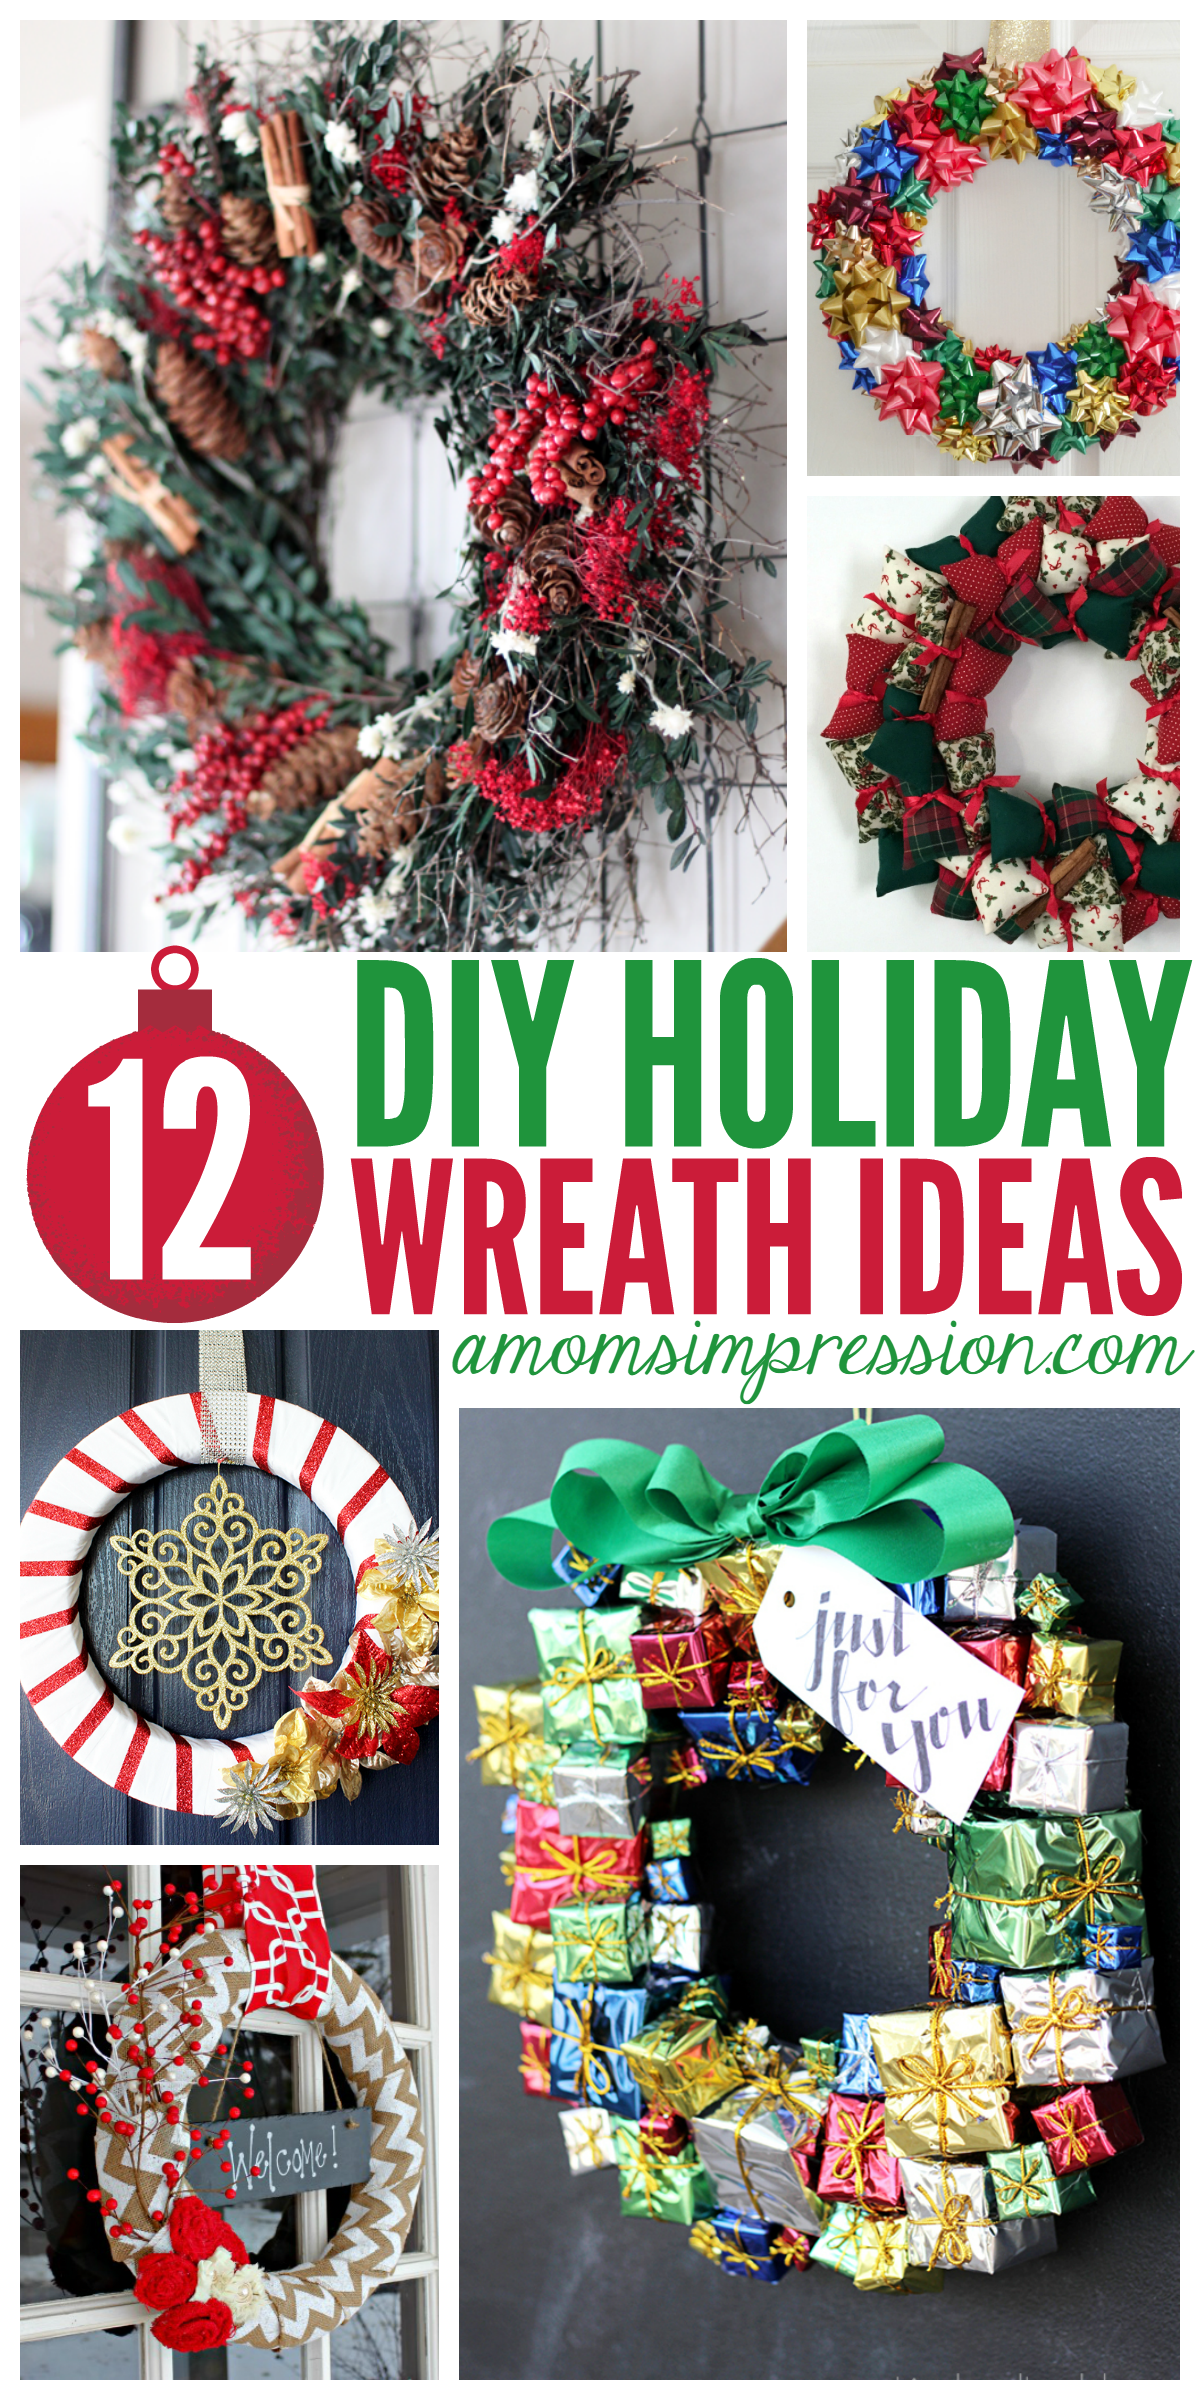 12 Diy Holiday Wreath Ideas These Christmas Crafts Are Easy To Make And Will Make Great Diy Ho Christmas Wreaths Diy Holiday Crafts For Kids Christmas Wreaths